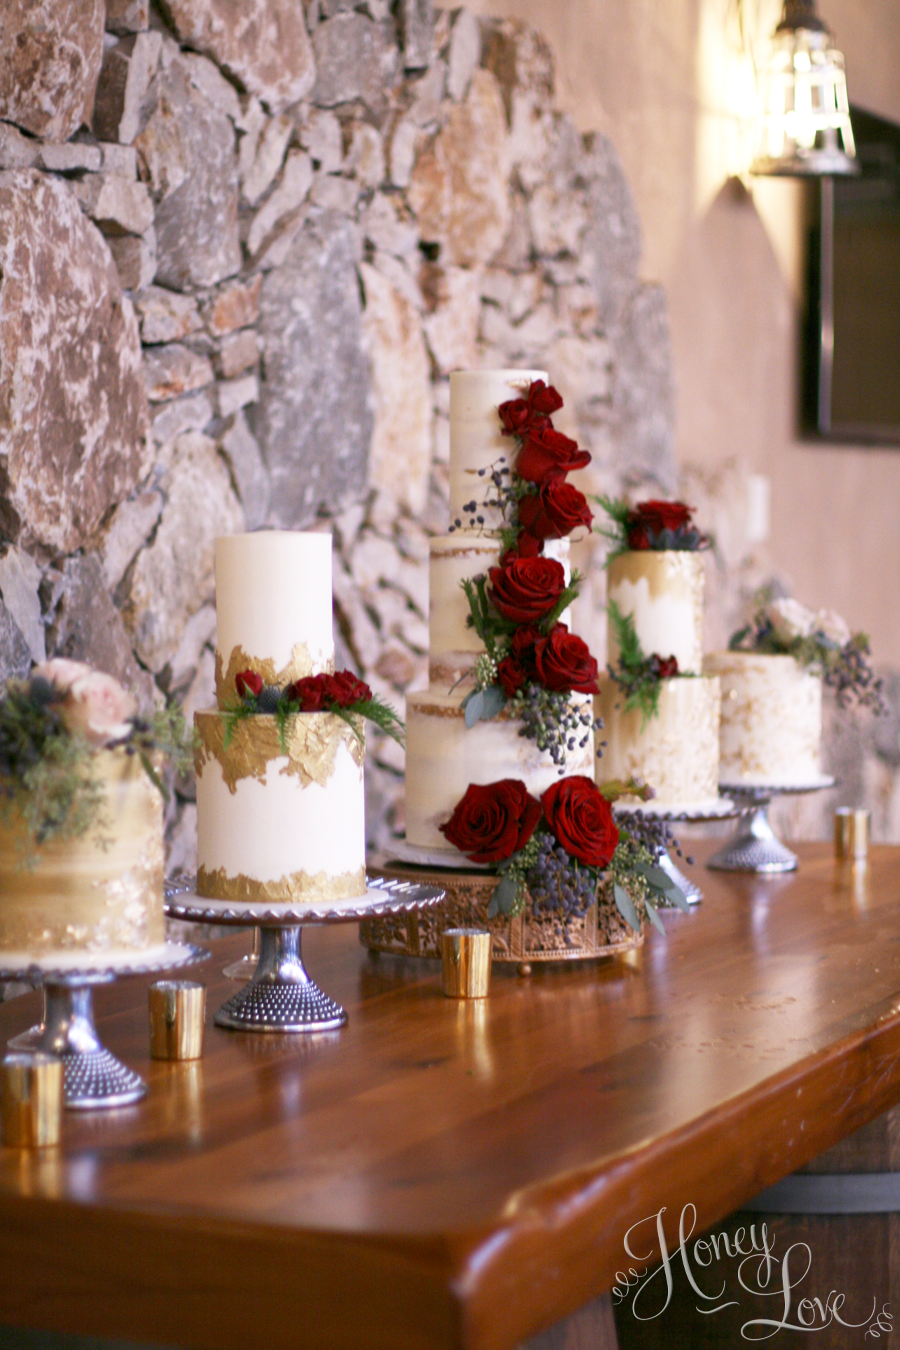 Multi-cake display to serve 150 wedding guests.